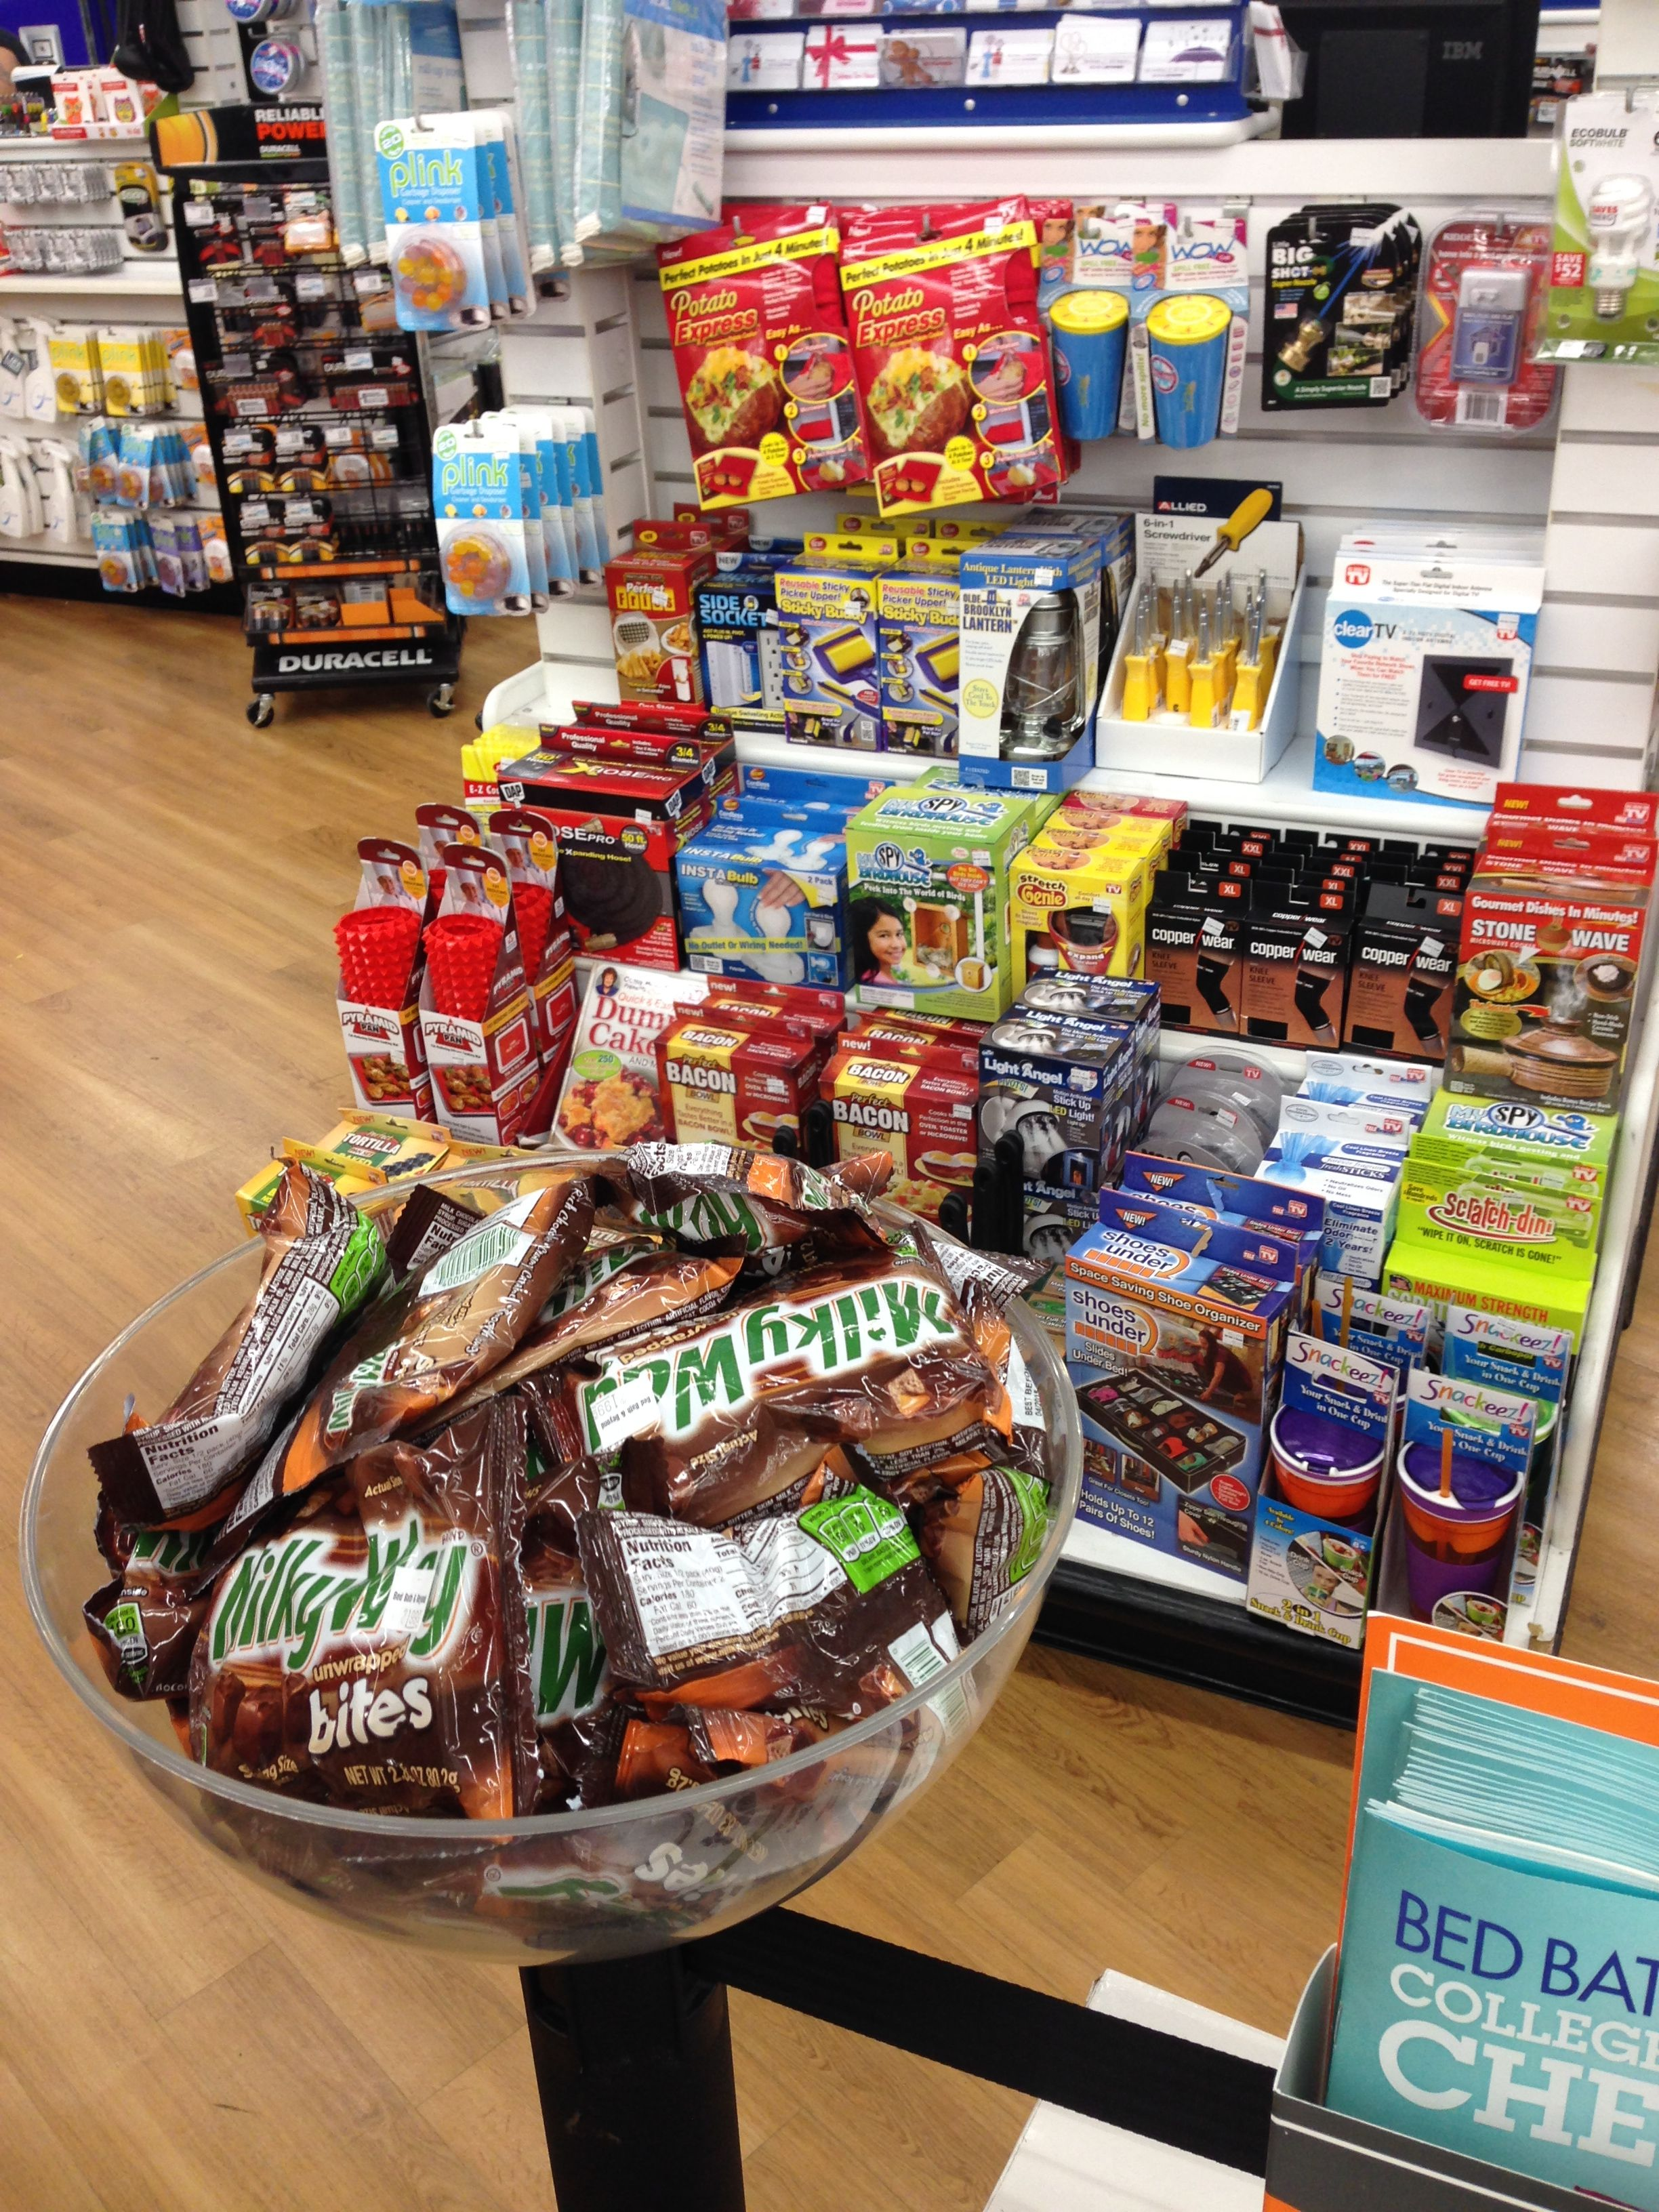 Bed bath and beyond chicago il - Bed Bath And Beyond Sells Milky Way Candy Bars At Checkout We Think They Should